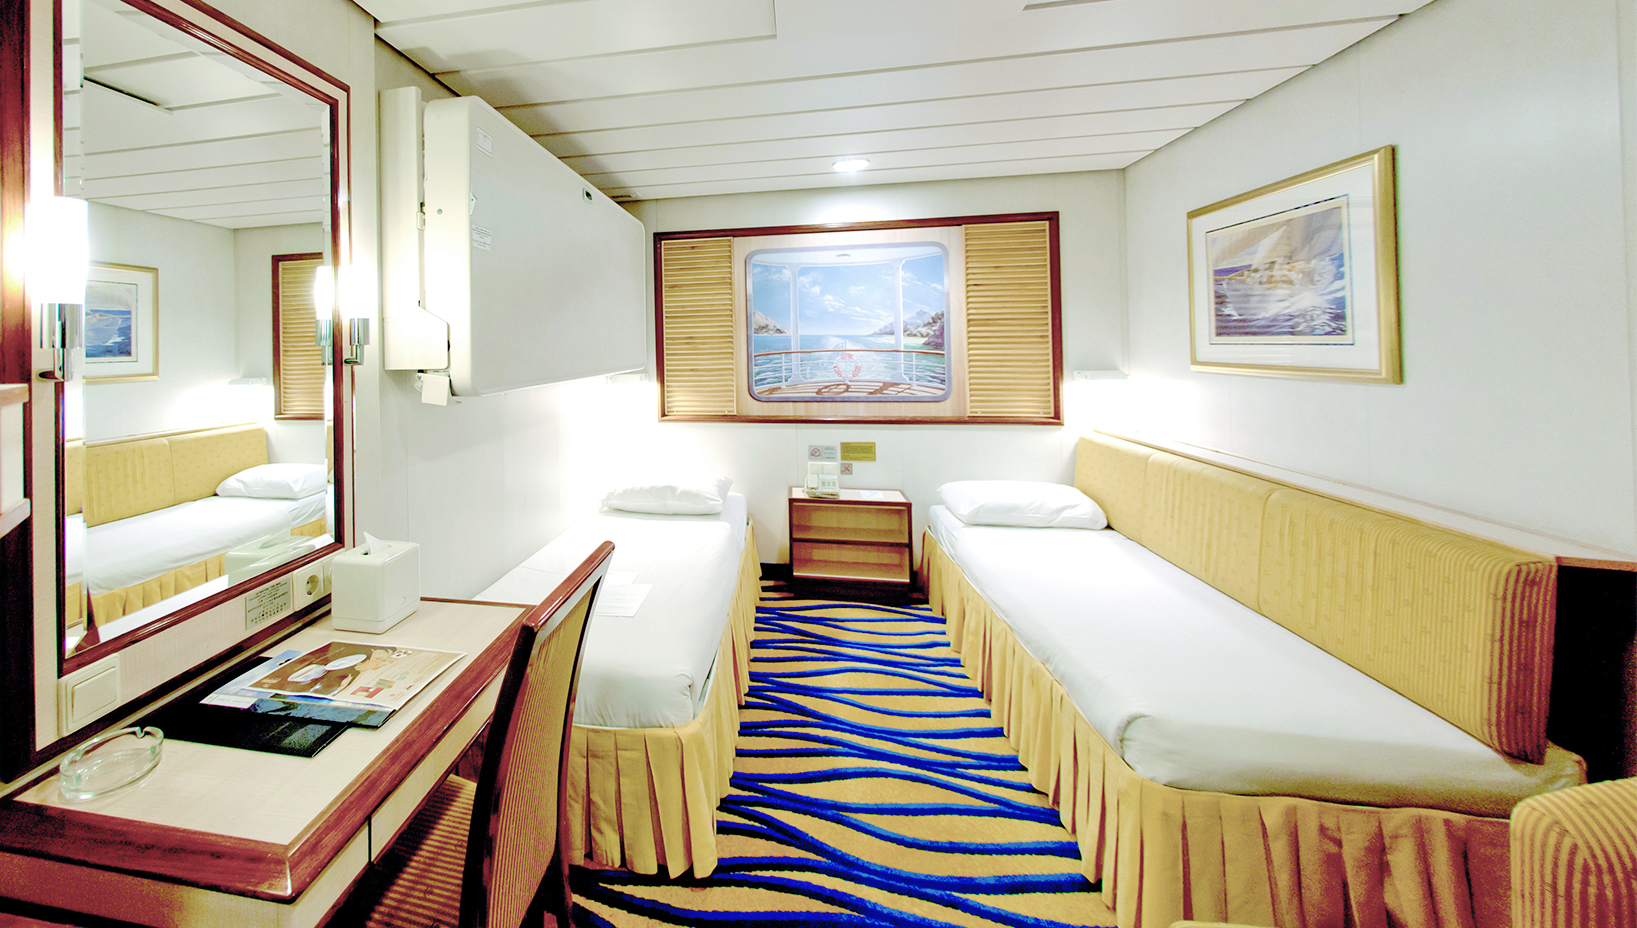 Inside Cabins Cruise Ac modation